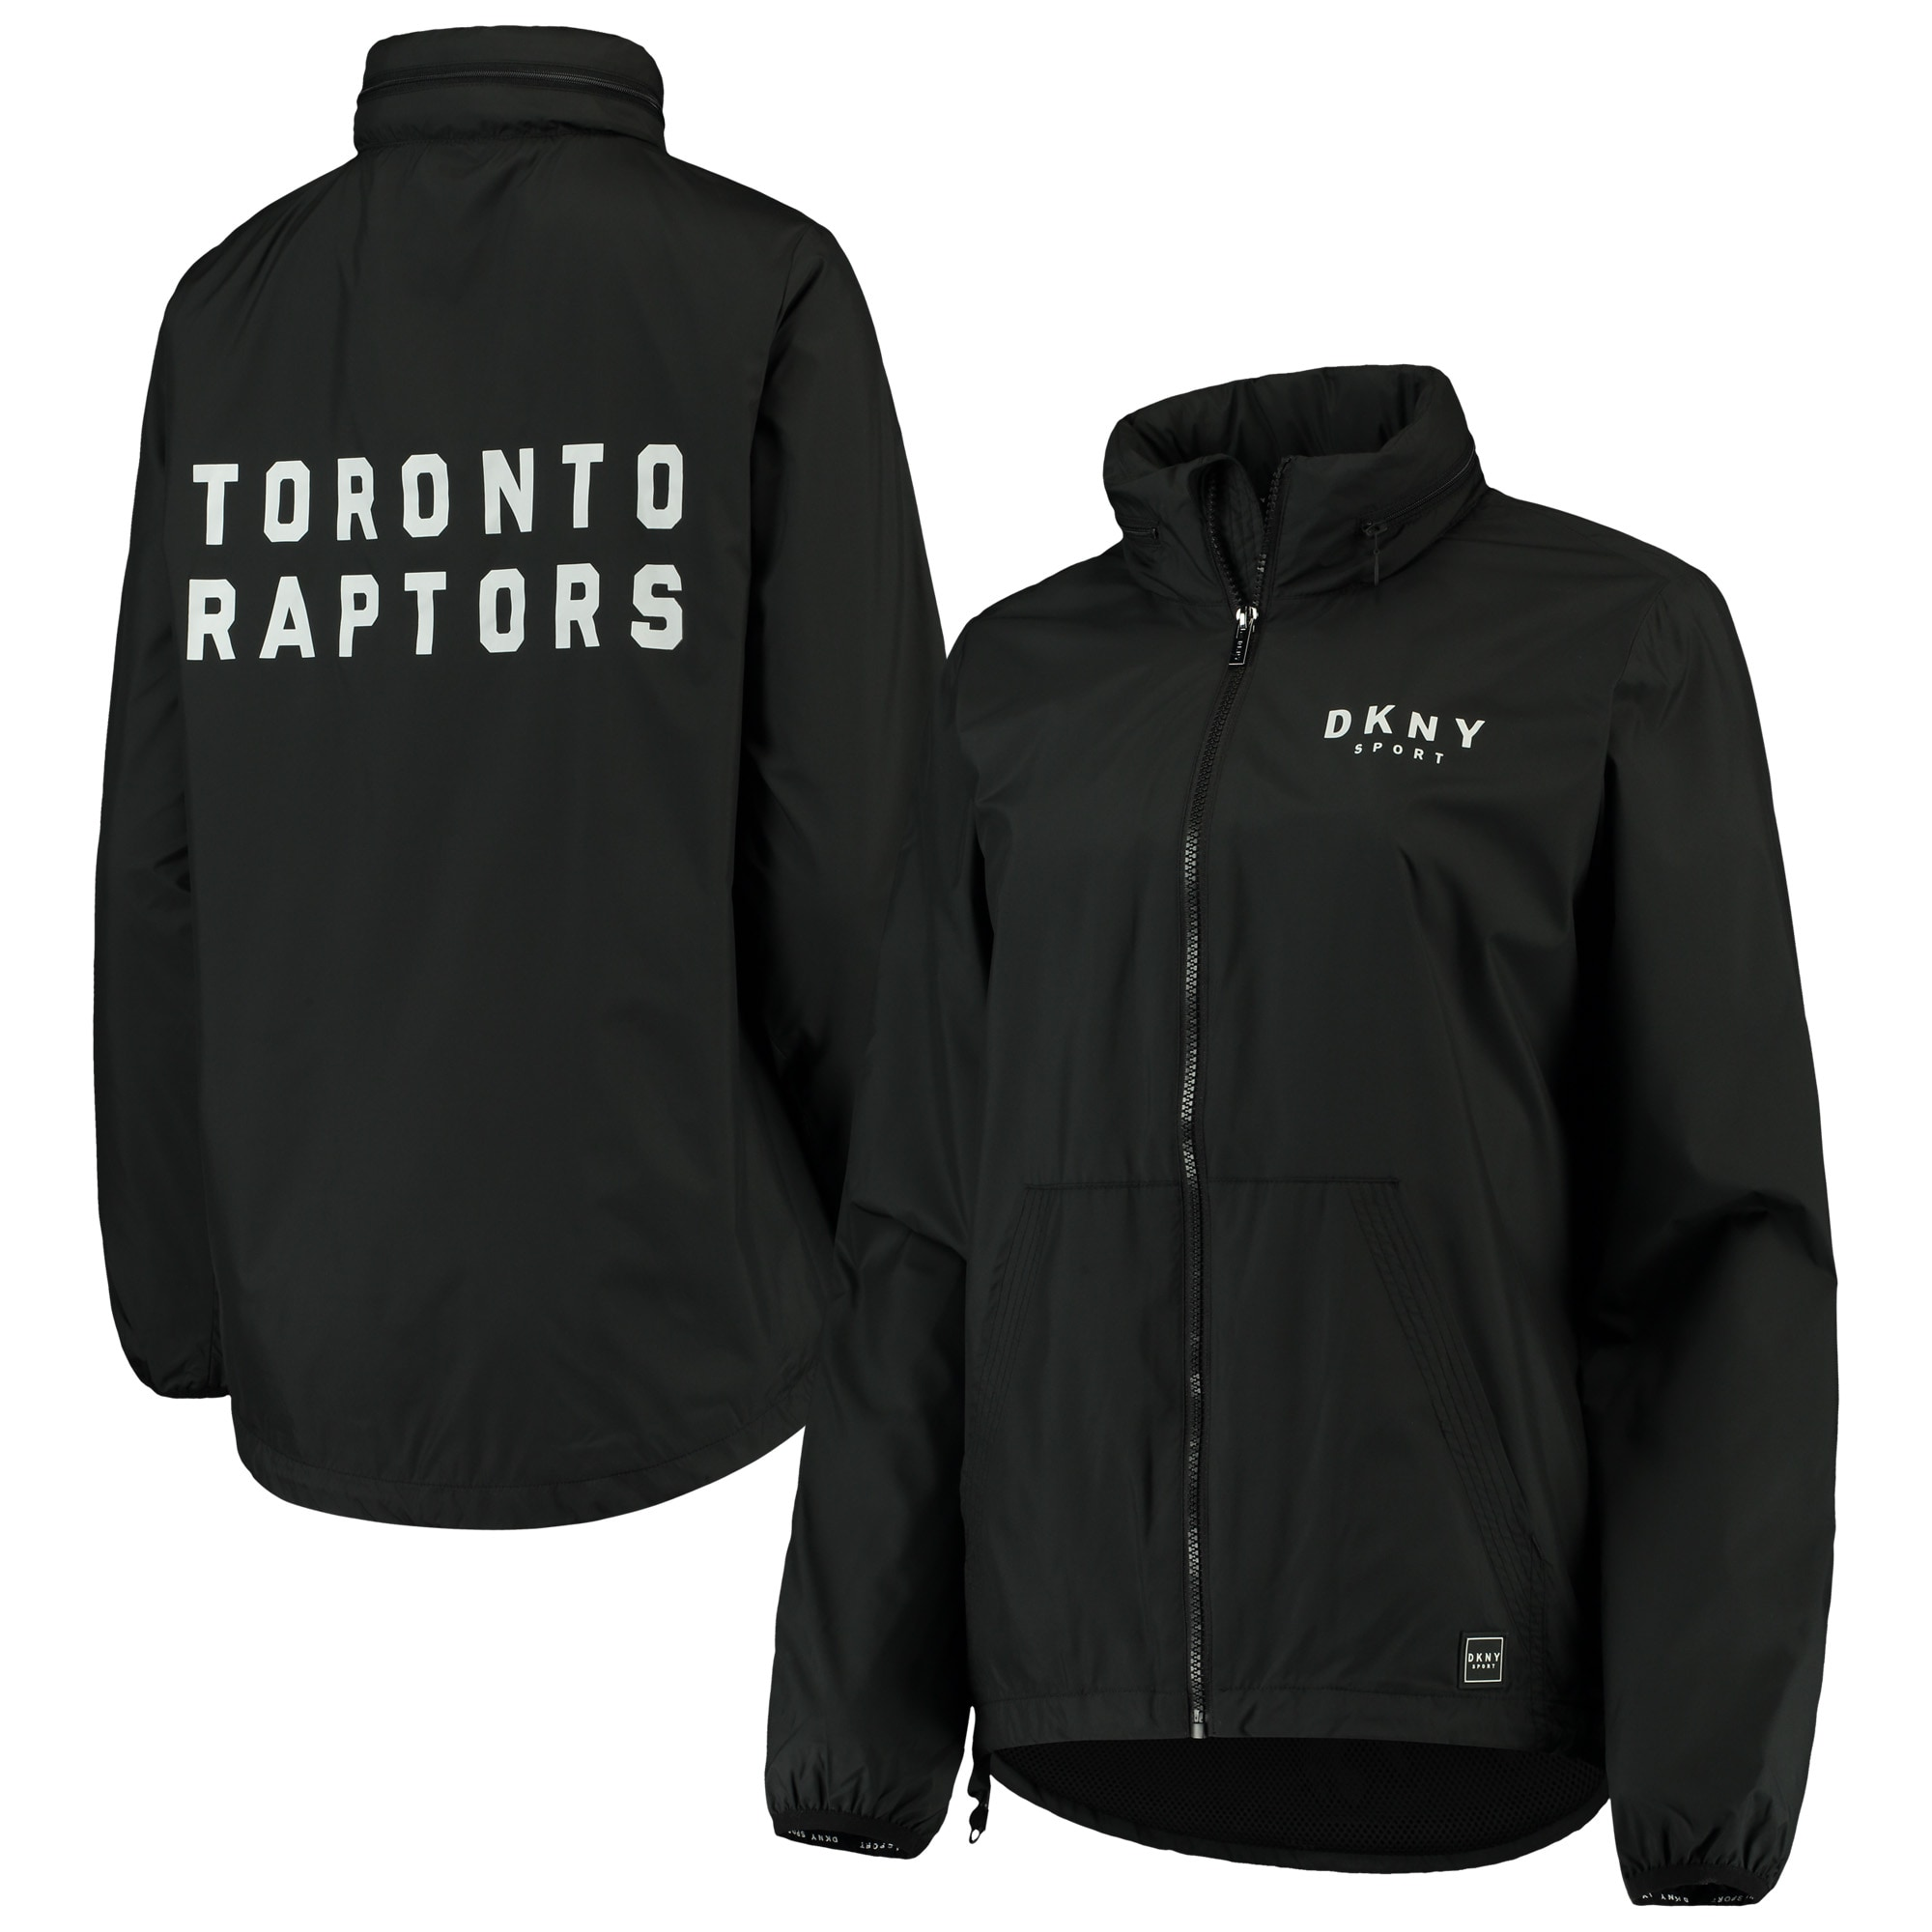 Toronto Raptors DKNY Sport Women's Stadium Full-Zip Jacket - Black